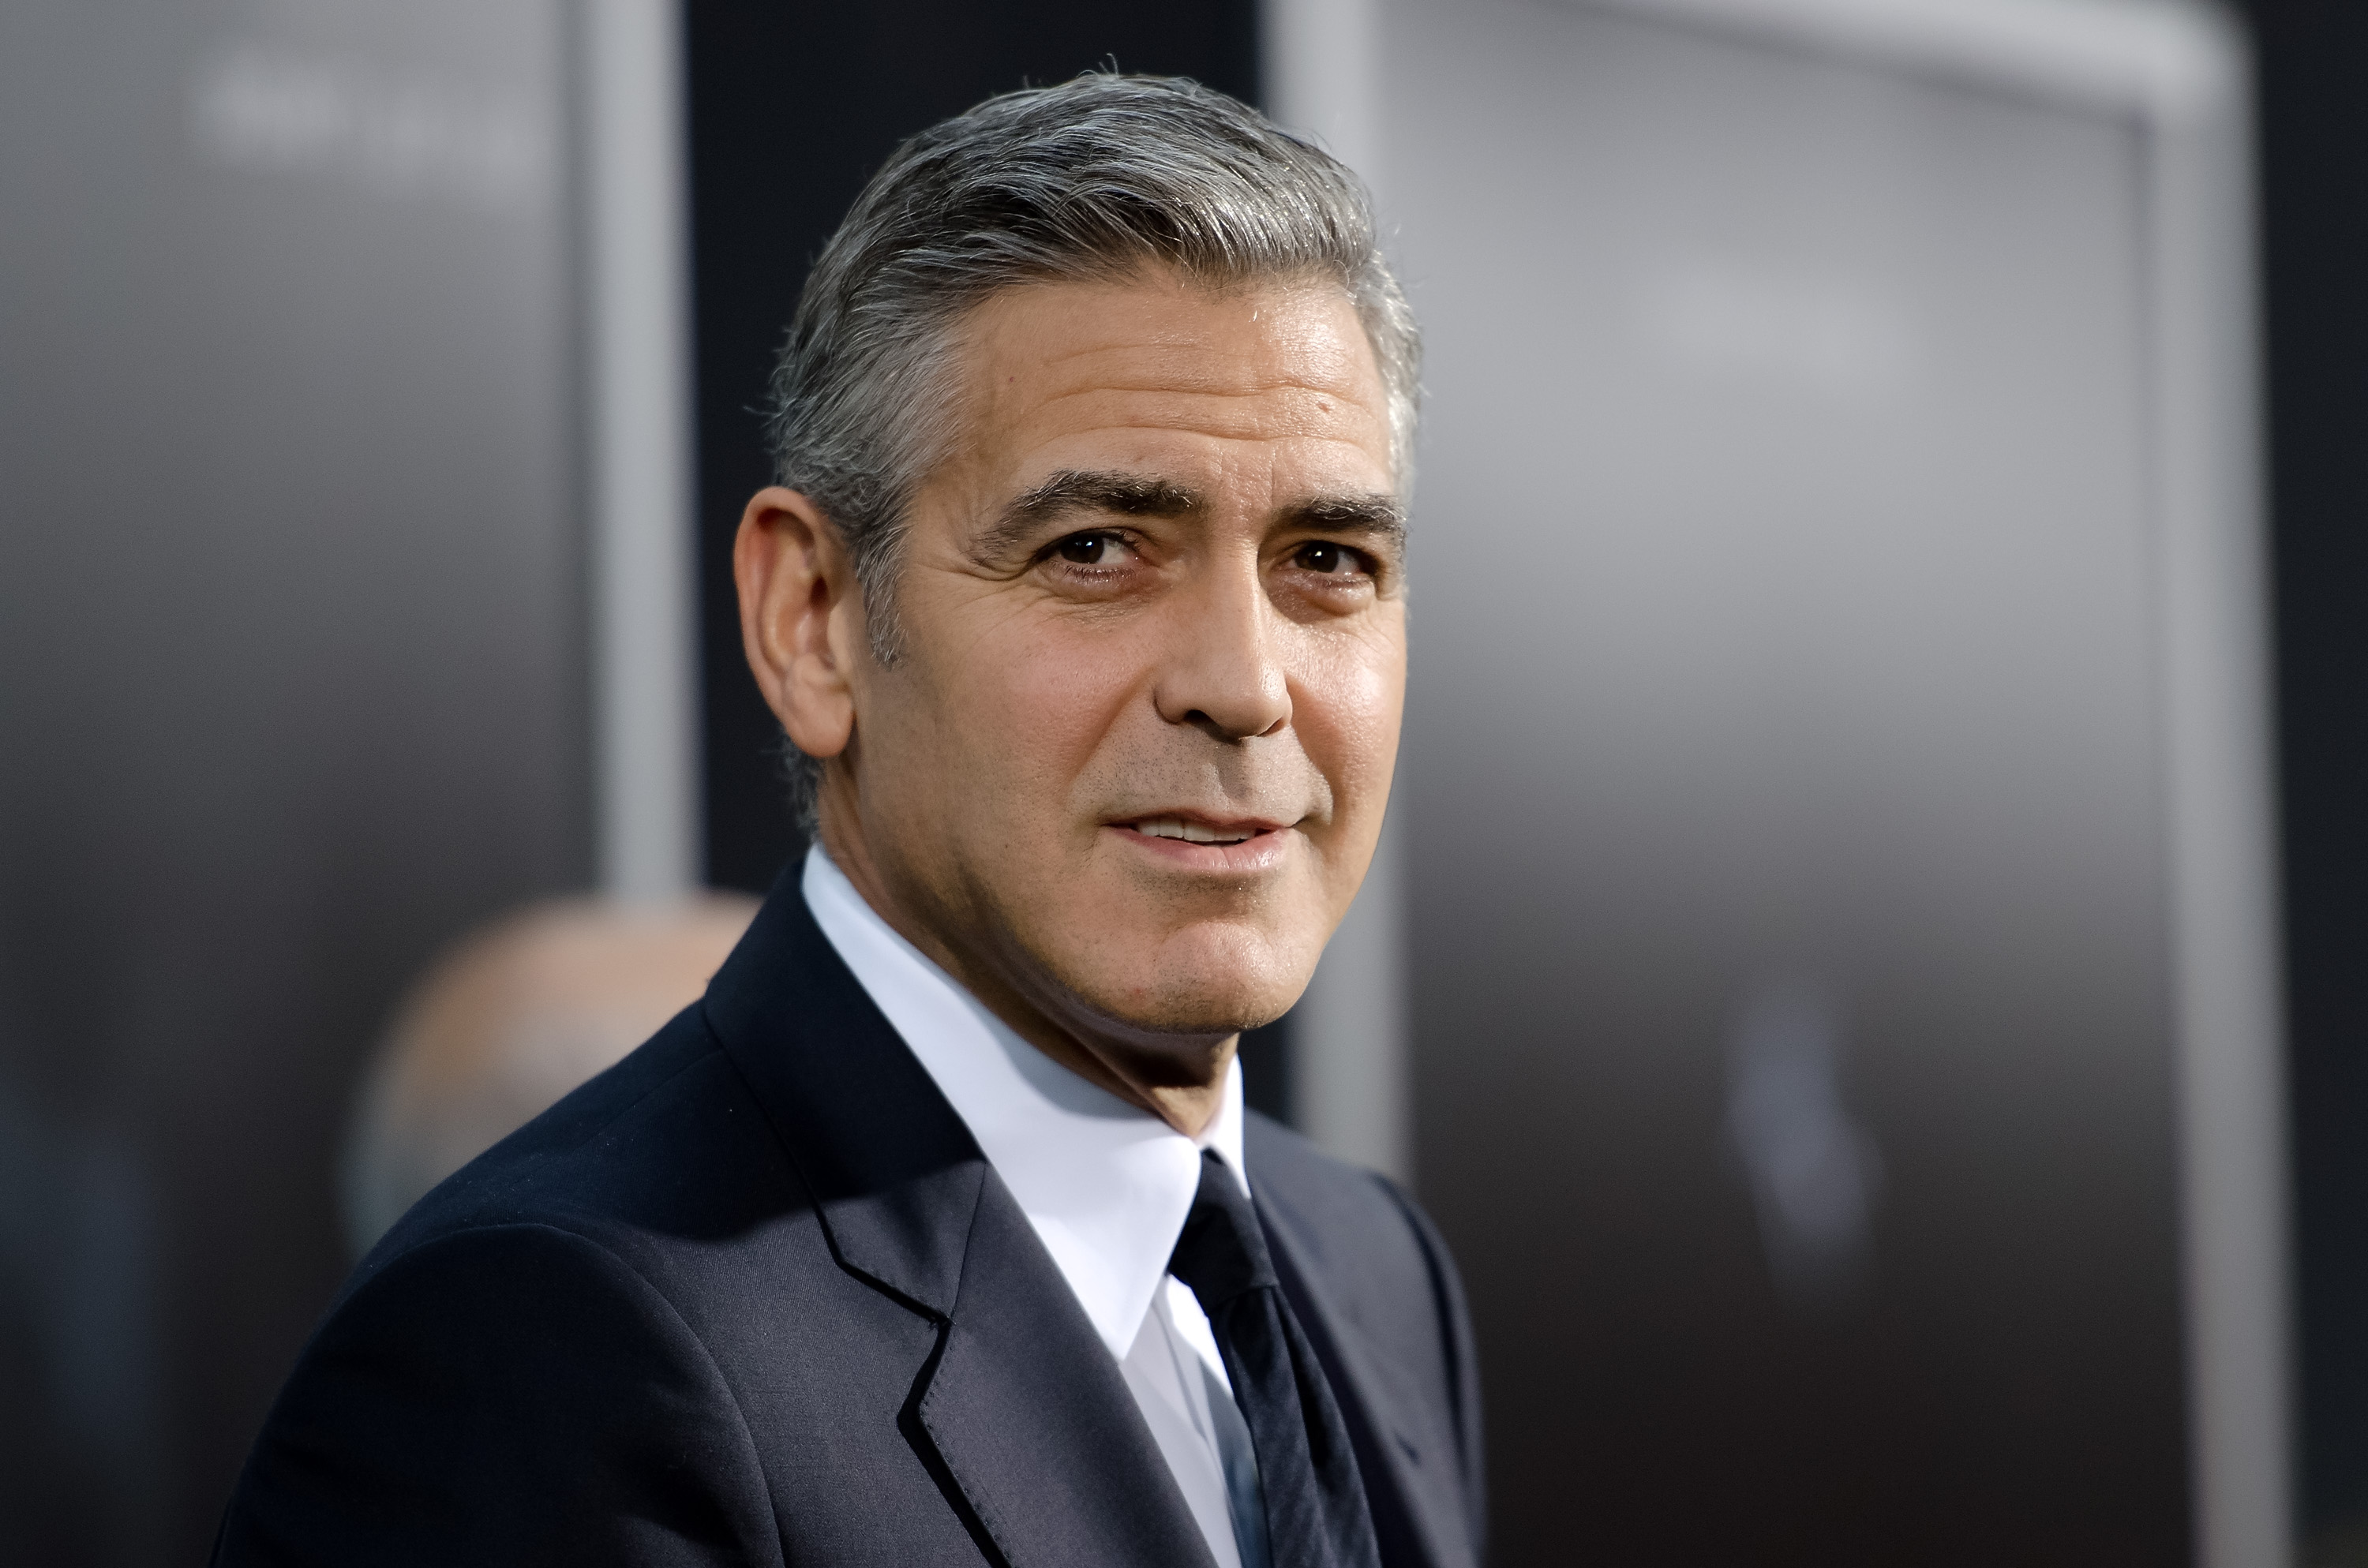 """George Clooney is 100% against social media. He's made it clear: """"I'd rather have a rectal examination on live TV by a fellow with cold hands than have a Facebook page."""" Loud and clear! (Photo: Archive)"""